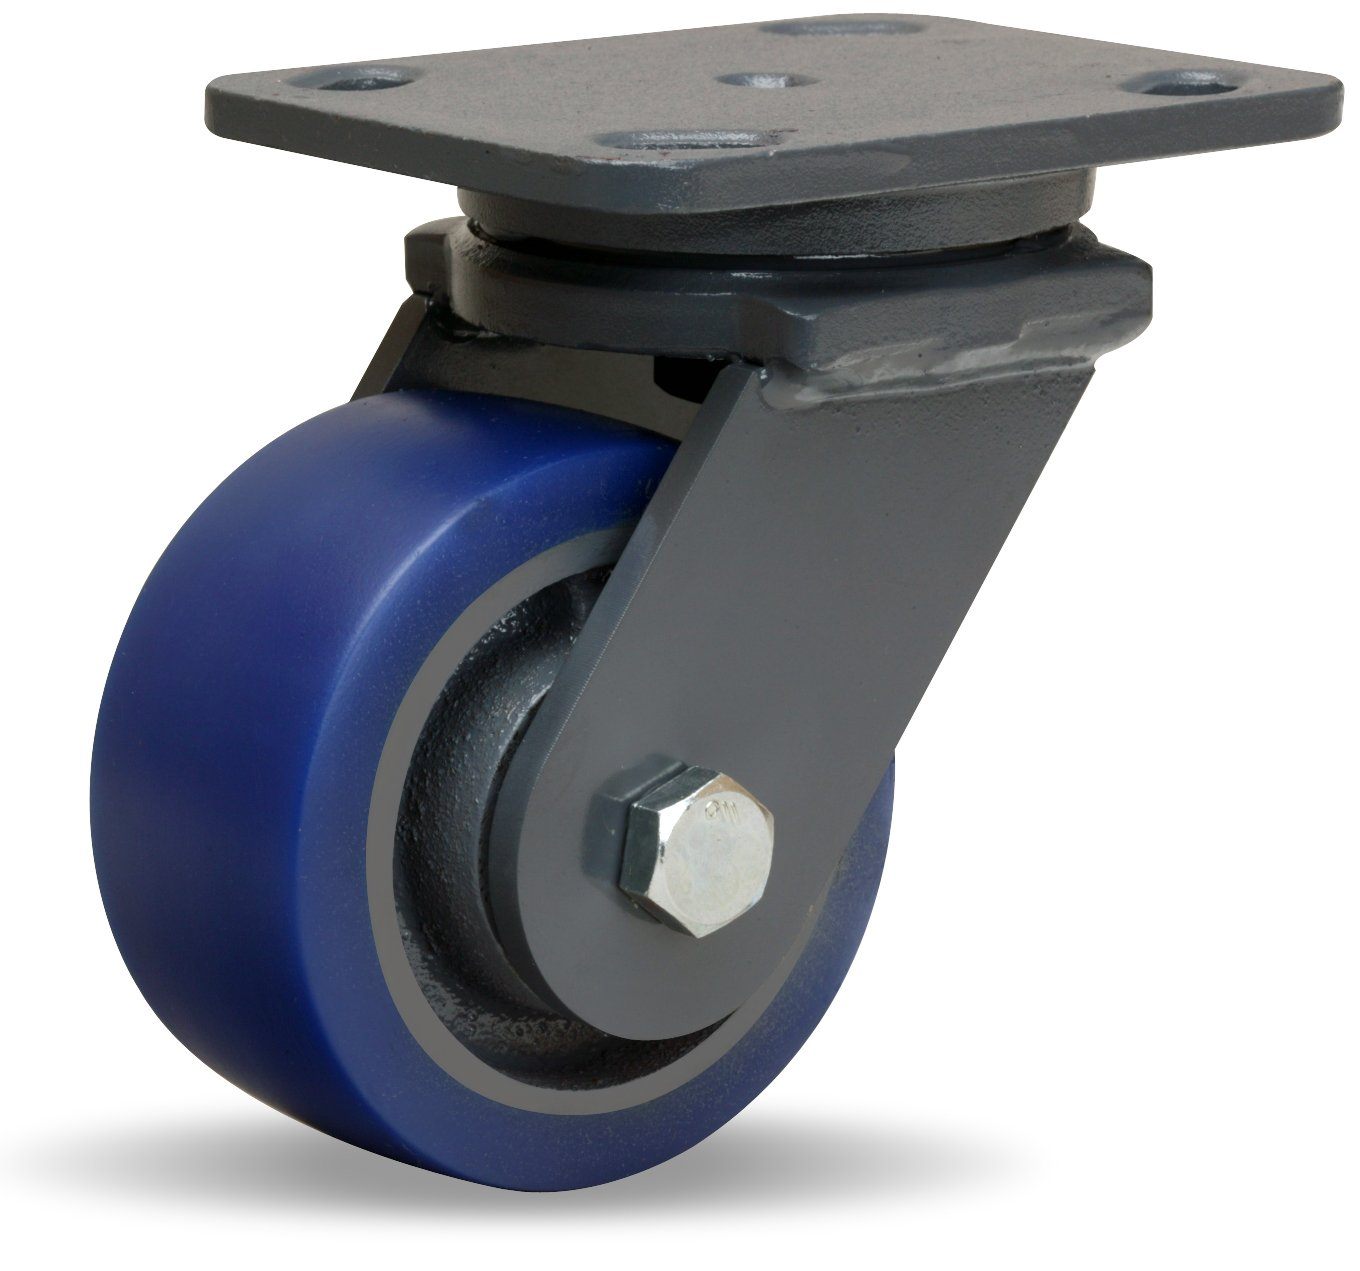 Hamilton Workhorse Plate Caster, Swivel, Poly-Soft Polyurethane Wheel, Precision Ball Bearing, 600 lbs Capacity, 4'' Wheel Dia, 2'' Wheel Width, 5-5/8'' Mount Height, 5'' Plate Length, 4'' Plate Width